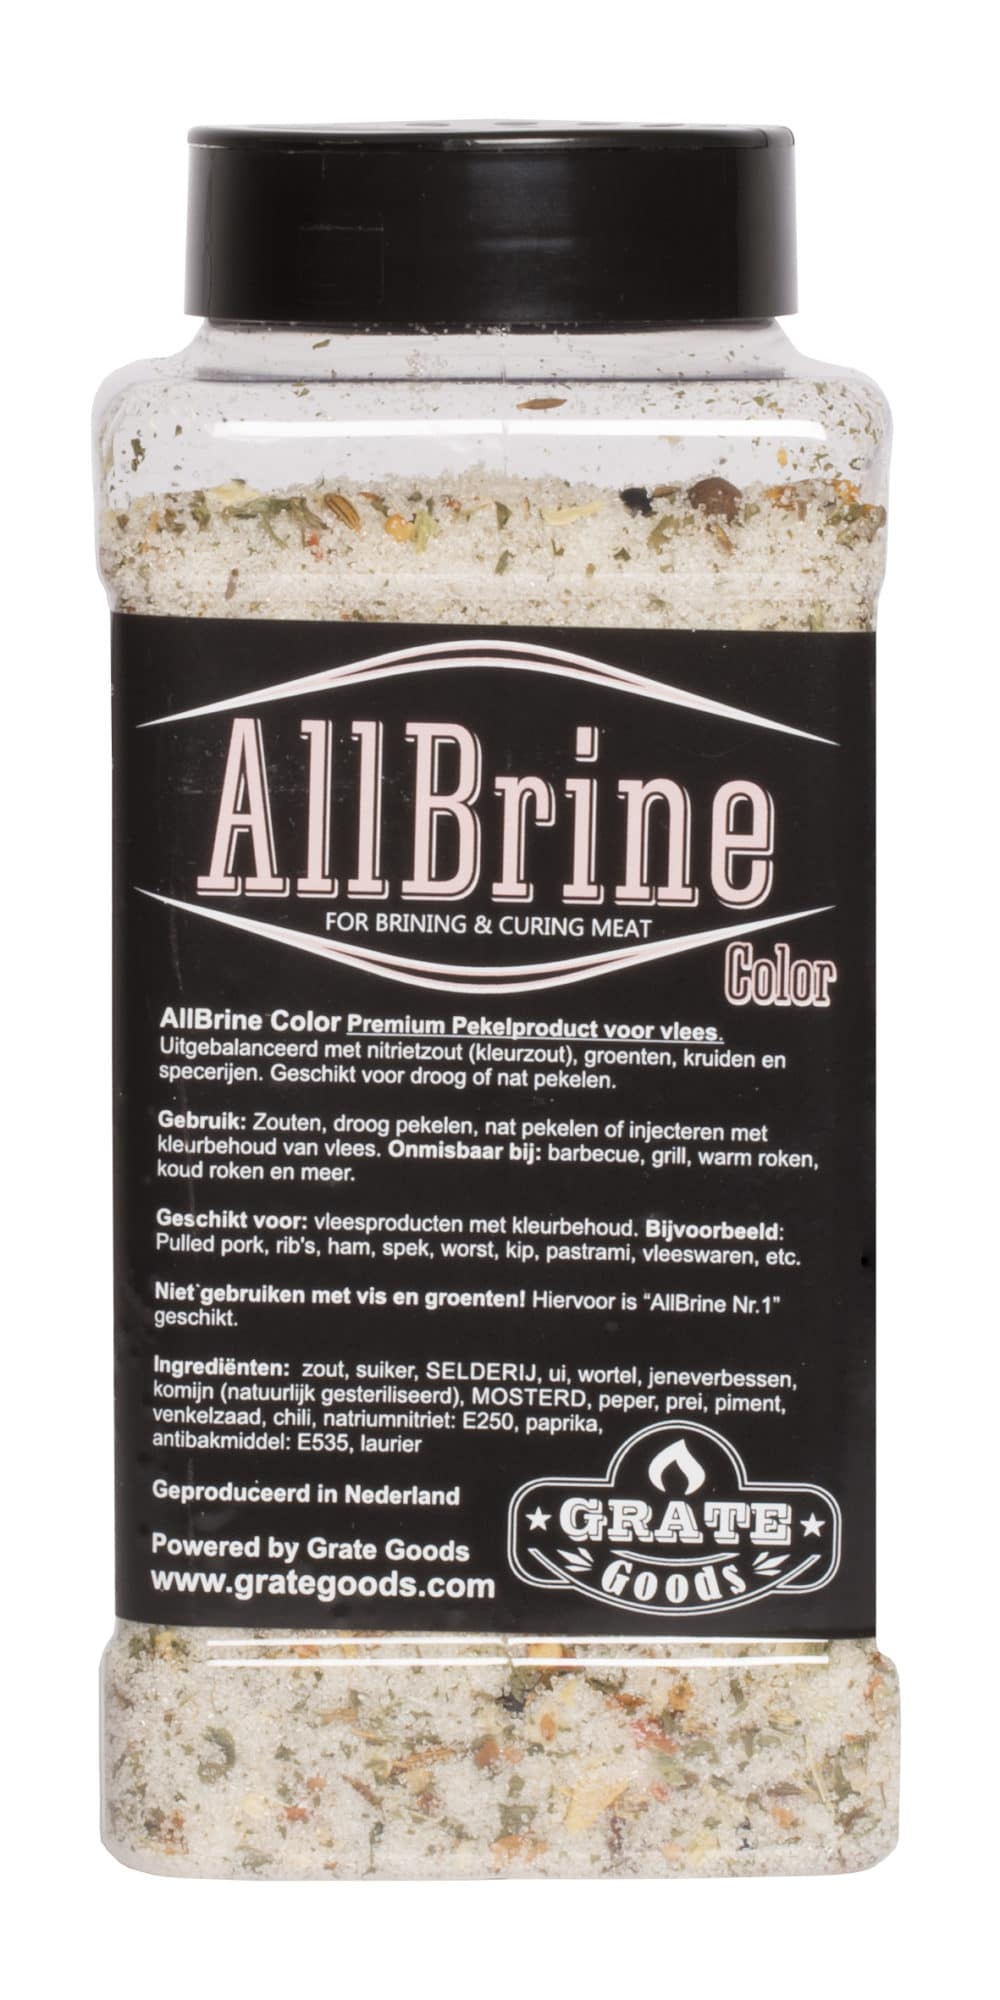 Allbrine color